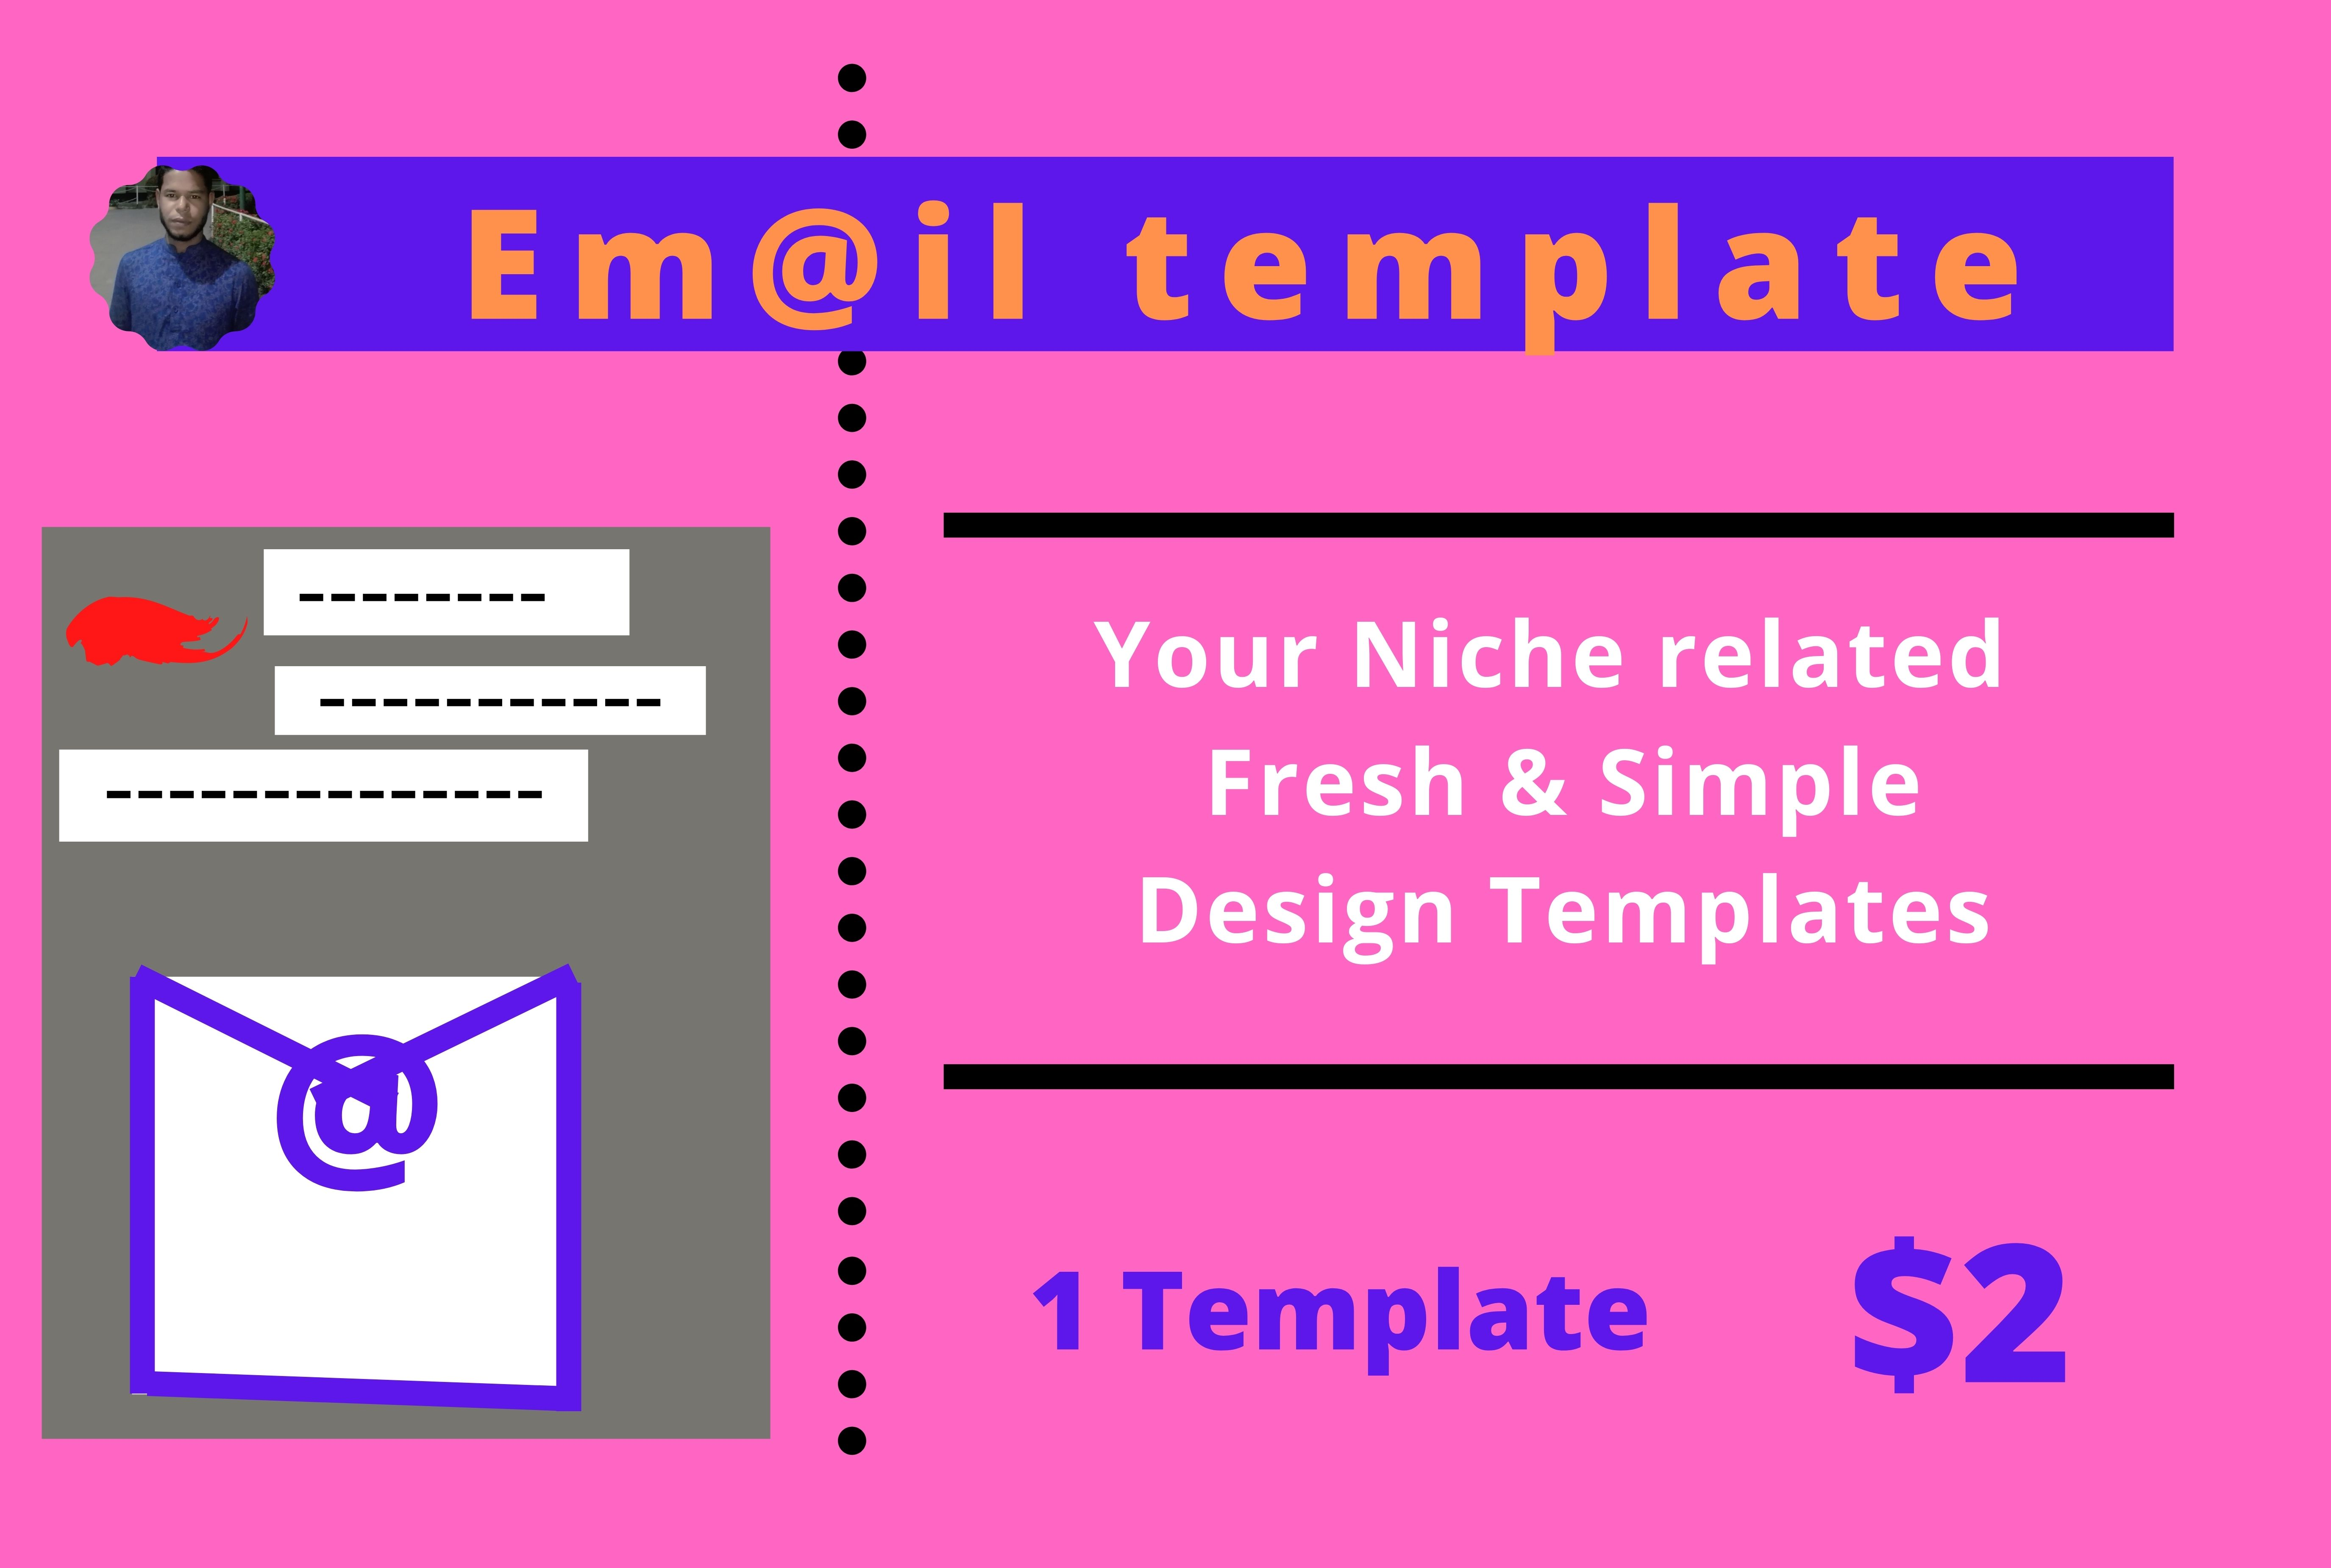 I Will provide Niche related fresh & simple design email template